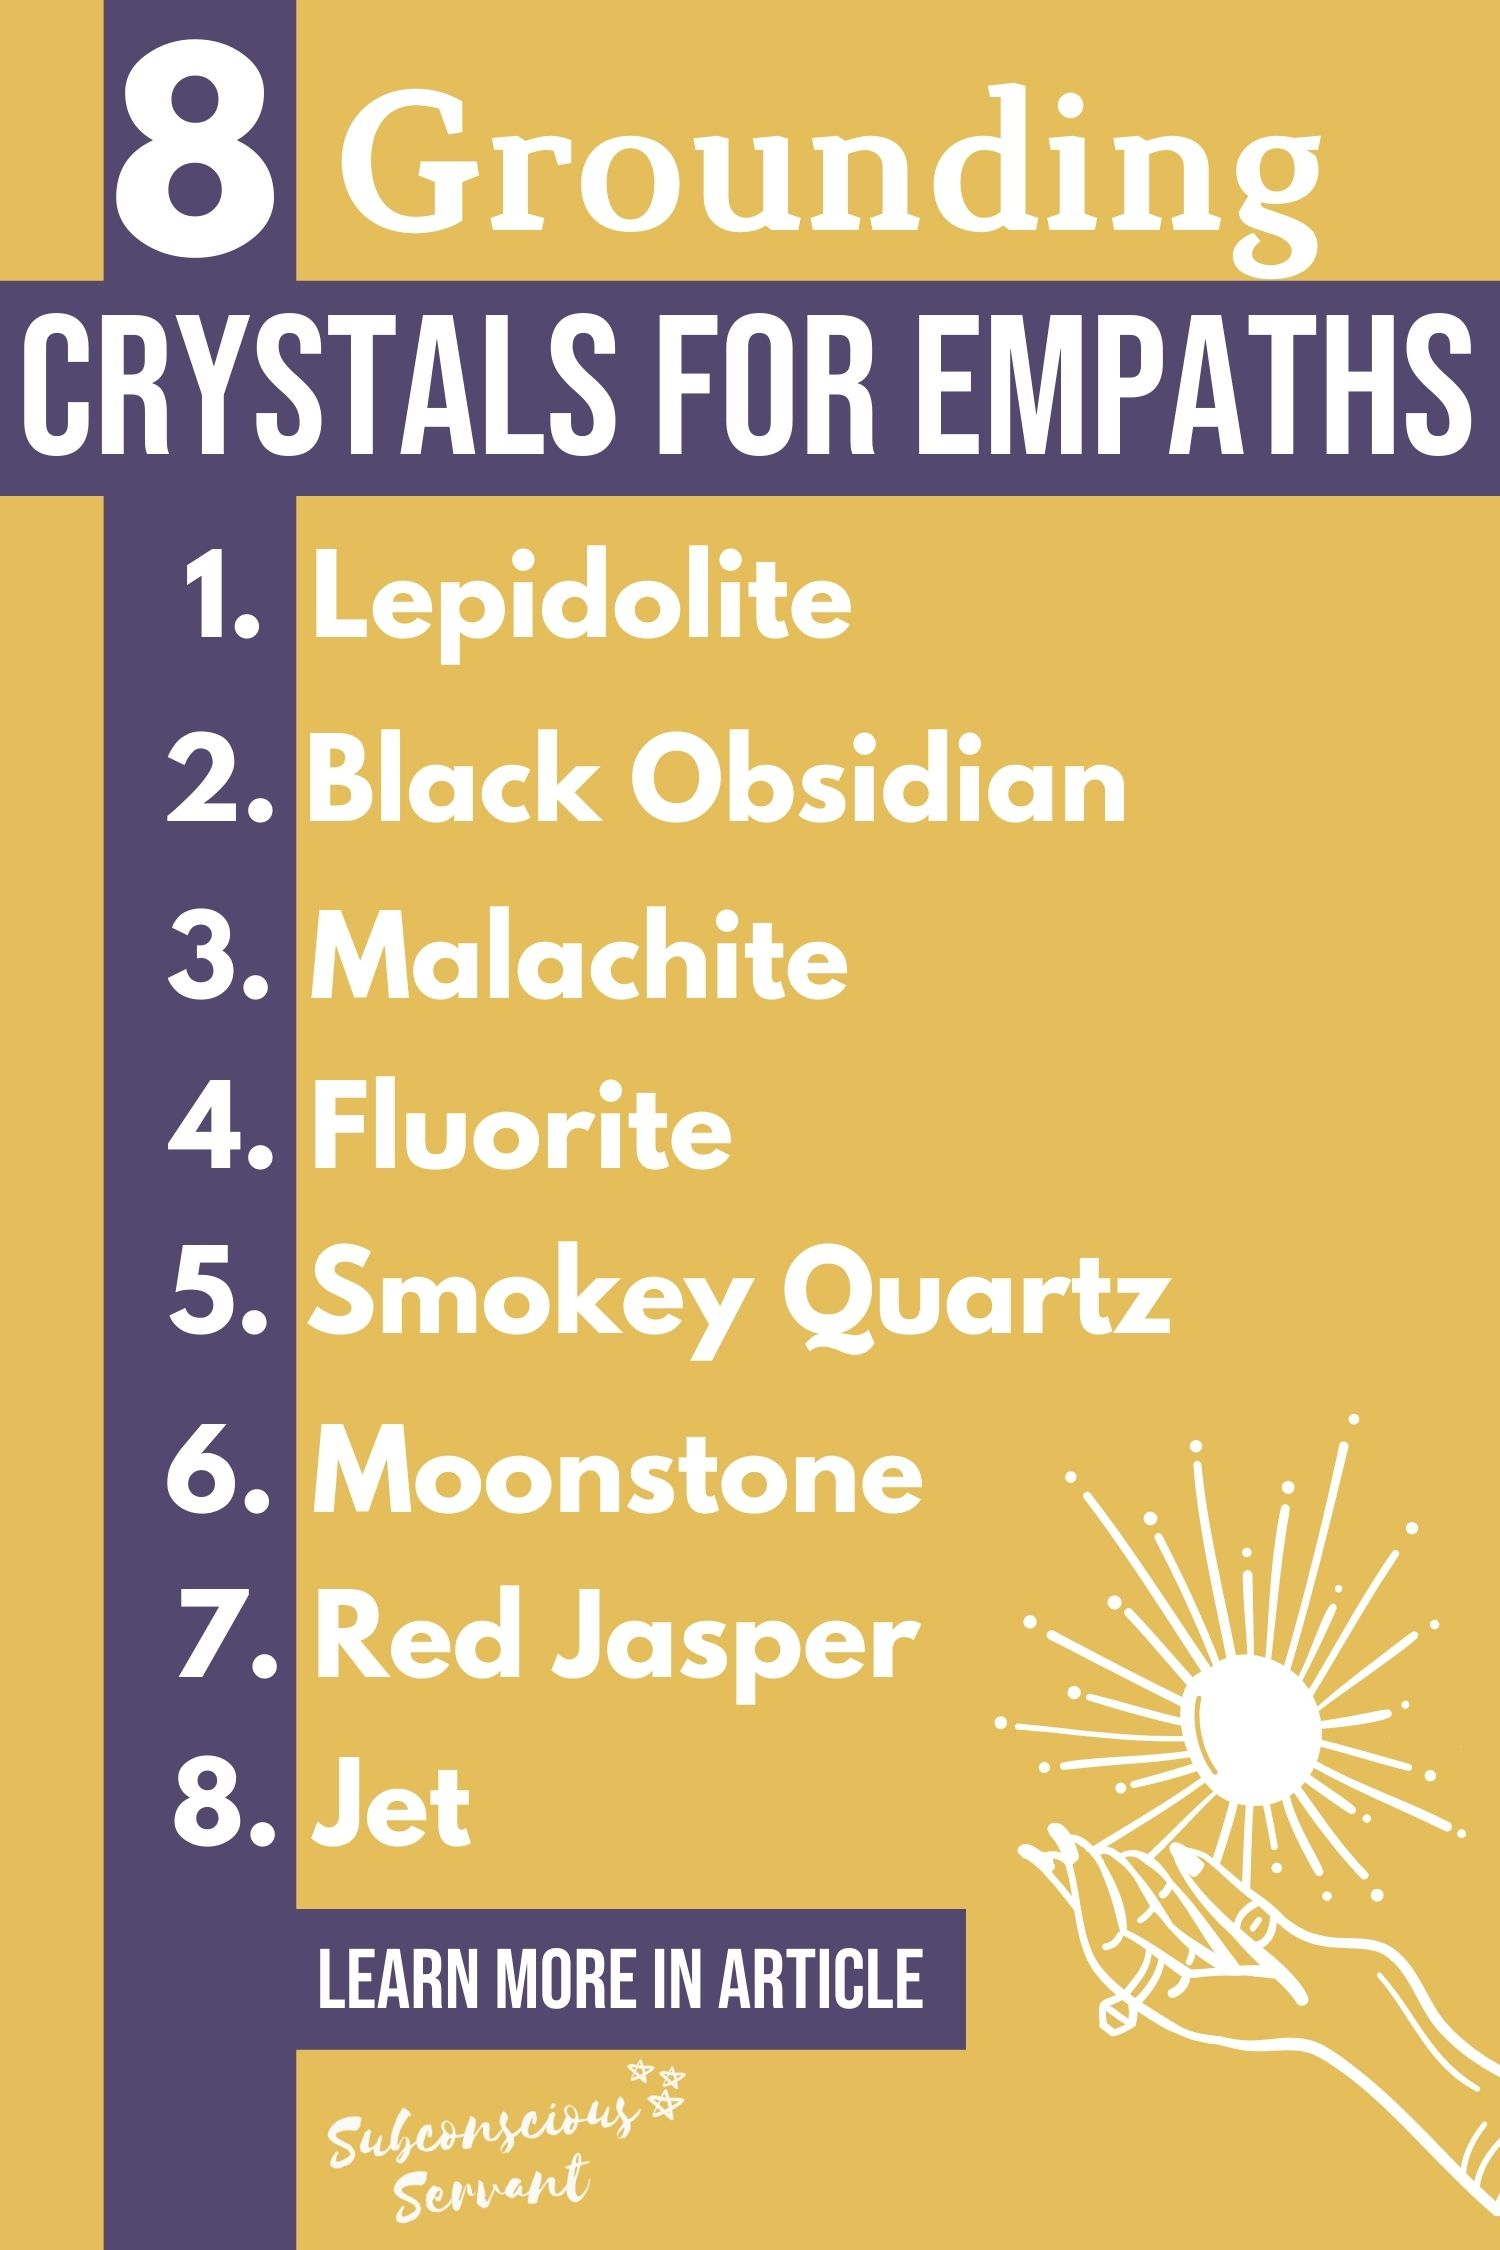 Grounding Crystals For Empaths - The Best Ones To Use And Why